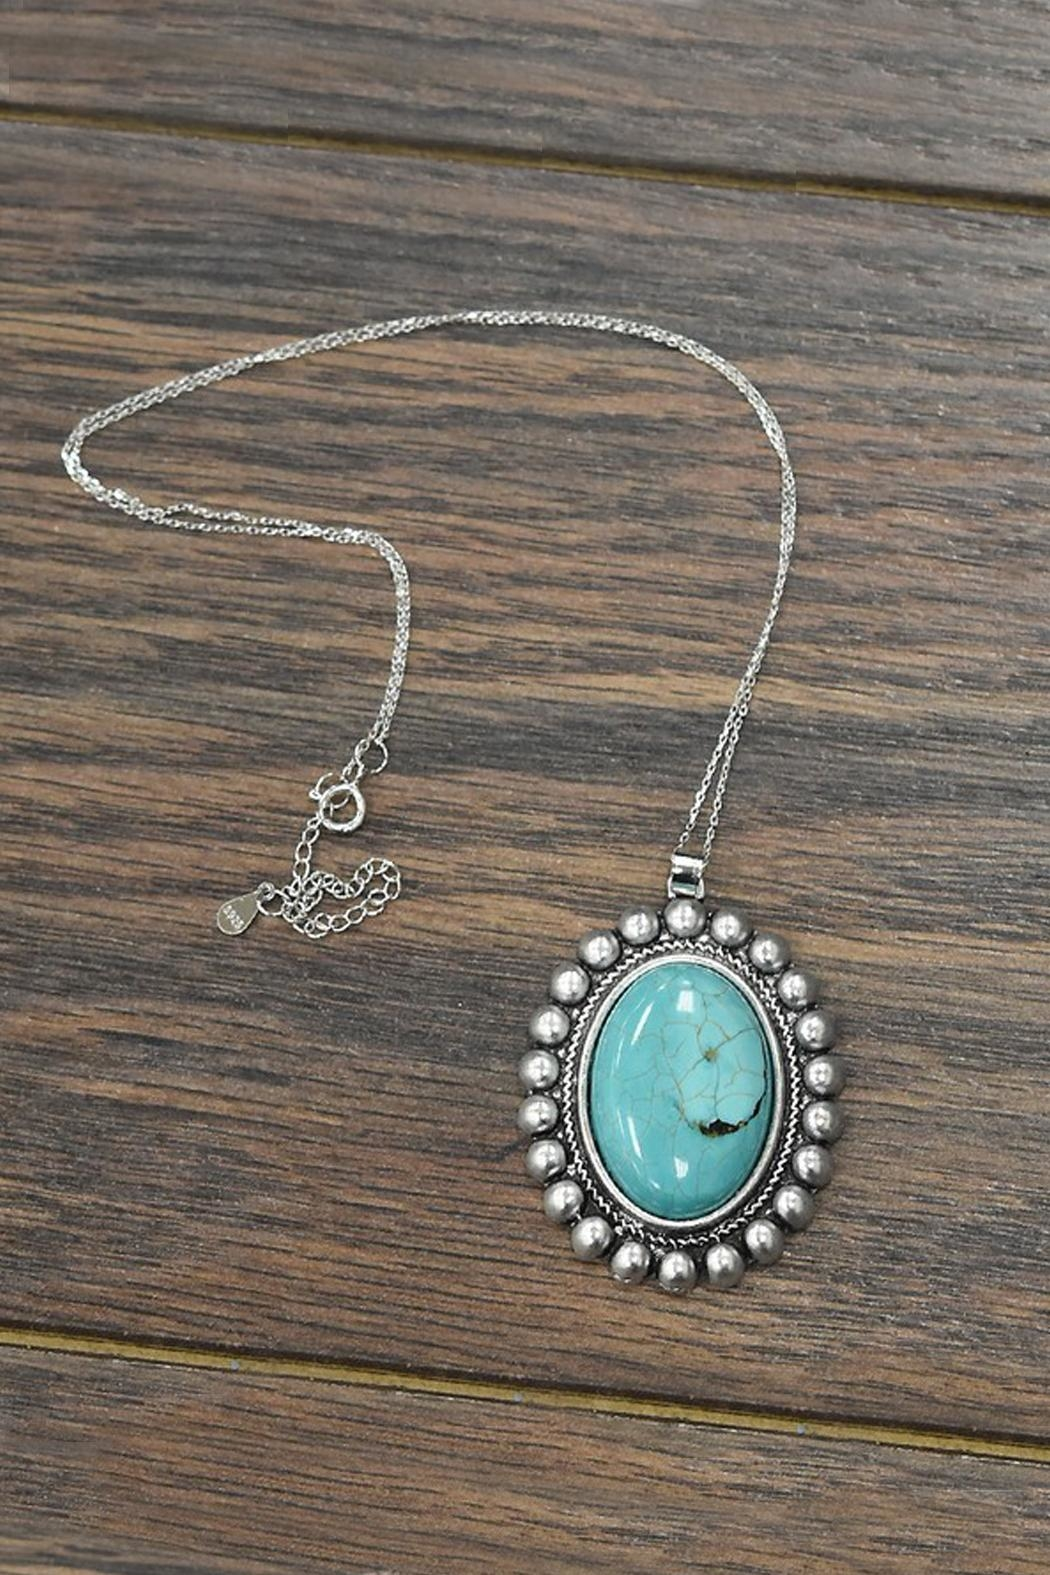 JChronicles Natural-Turquoise-Stone With Sterling-Silver-Chain-Necklace - Main Image